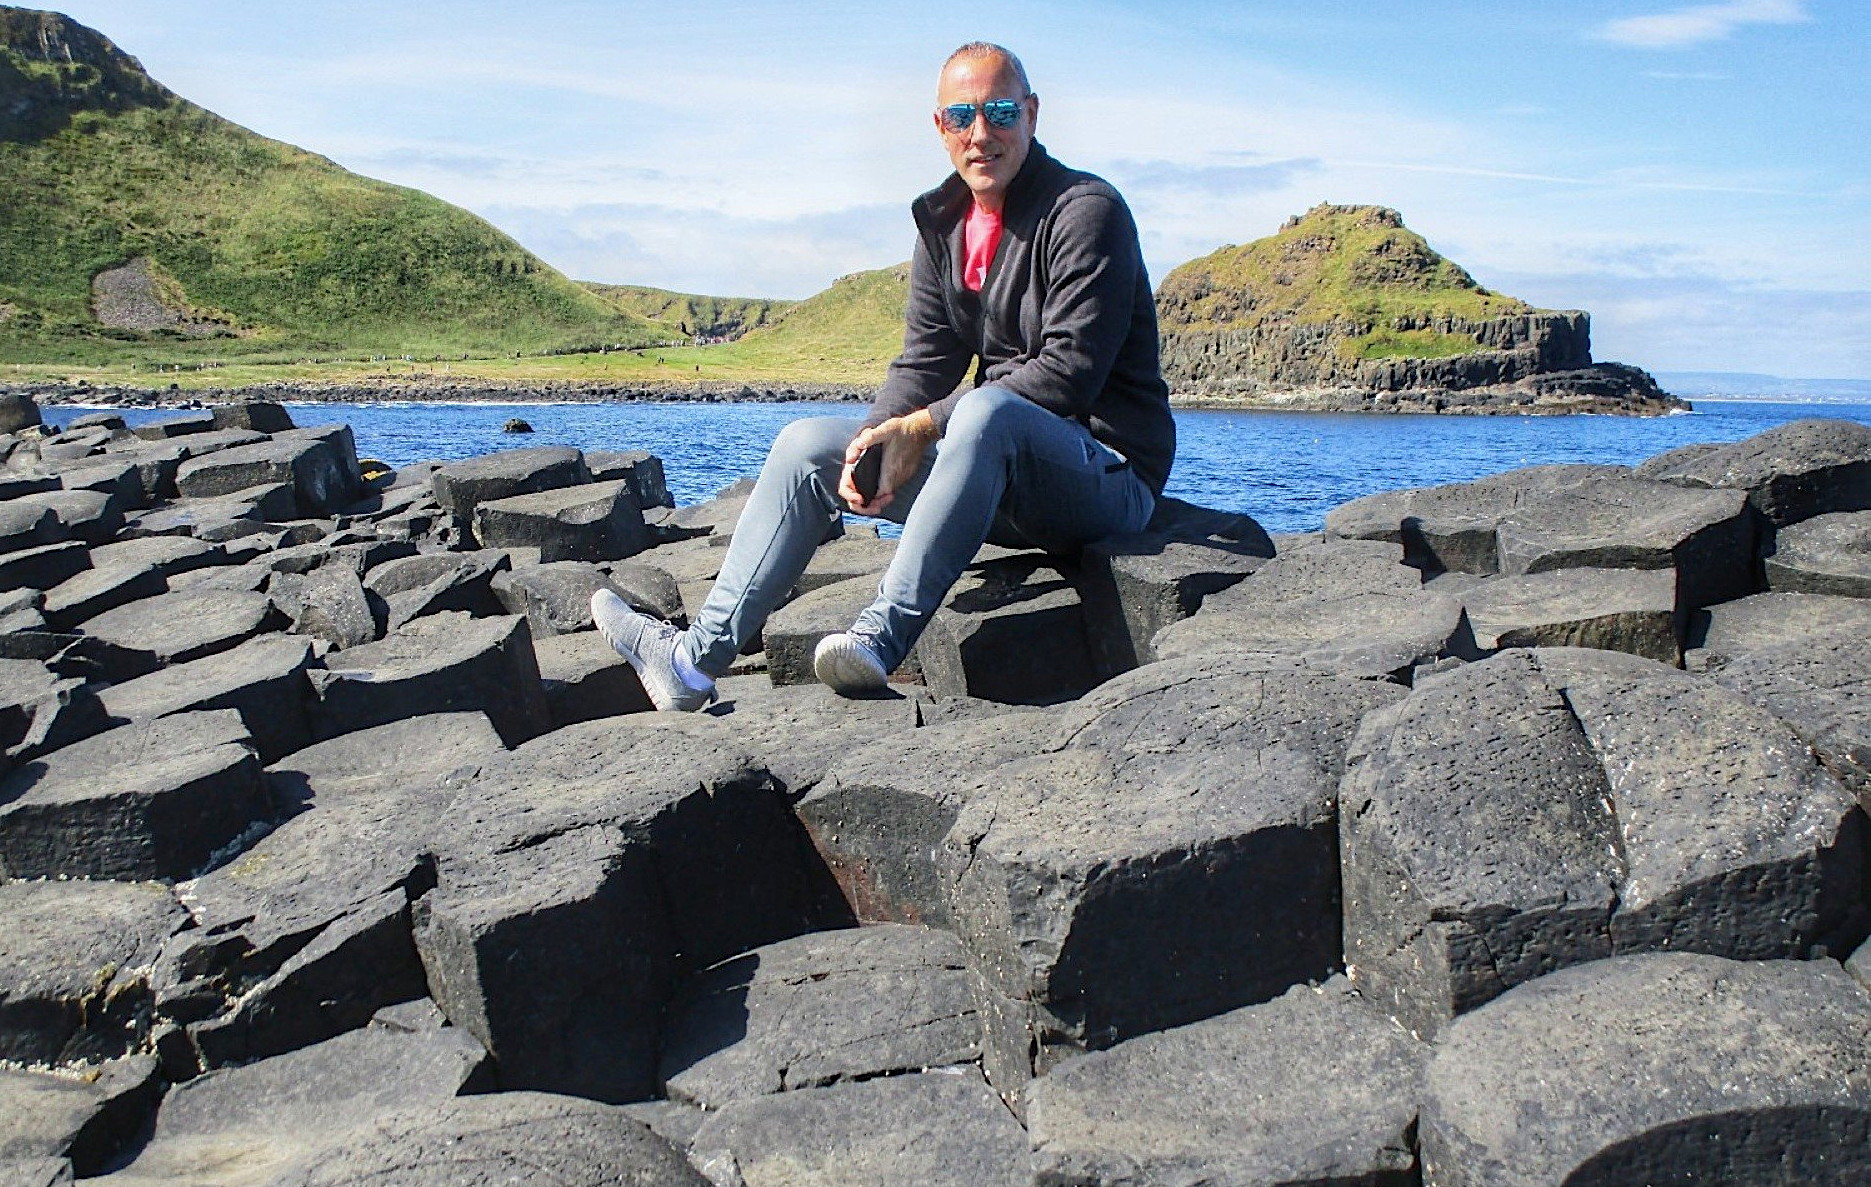 Marsh, seen here at Giant's Causeway in Northern Ireland, was inspired to pursue a career in travel after meeting a group of travel agents while backpacking through Europe in the early '90s. Photo courtesy of Freddie Marsh.